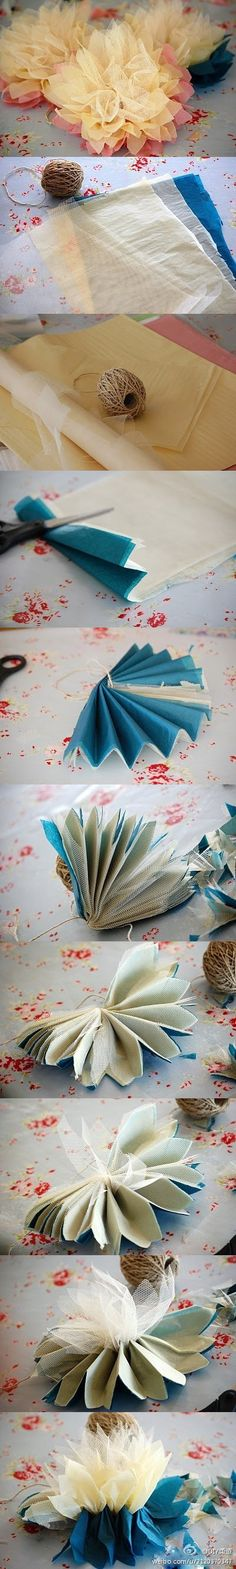 Tulle and thin fabric stacked before cutting.  This is the same type of method for making the tissue paper pom poms...I can do this!